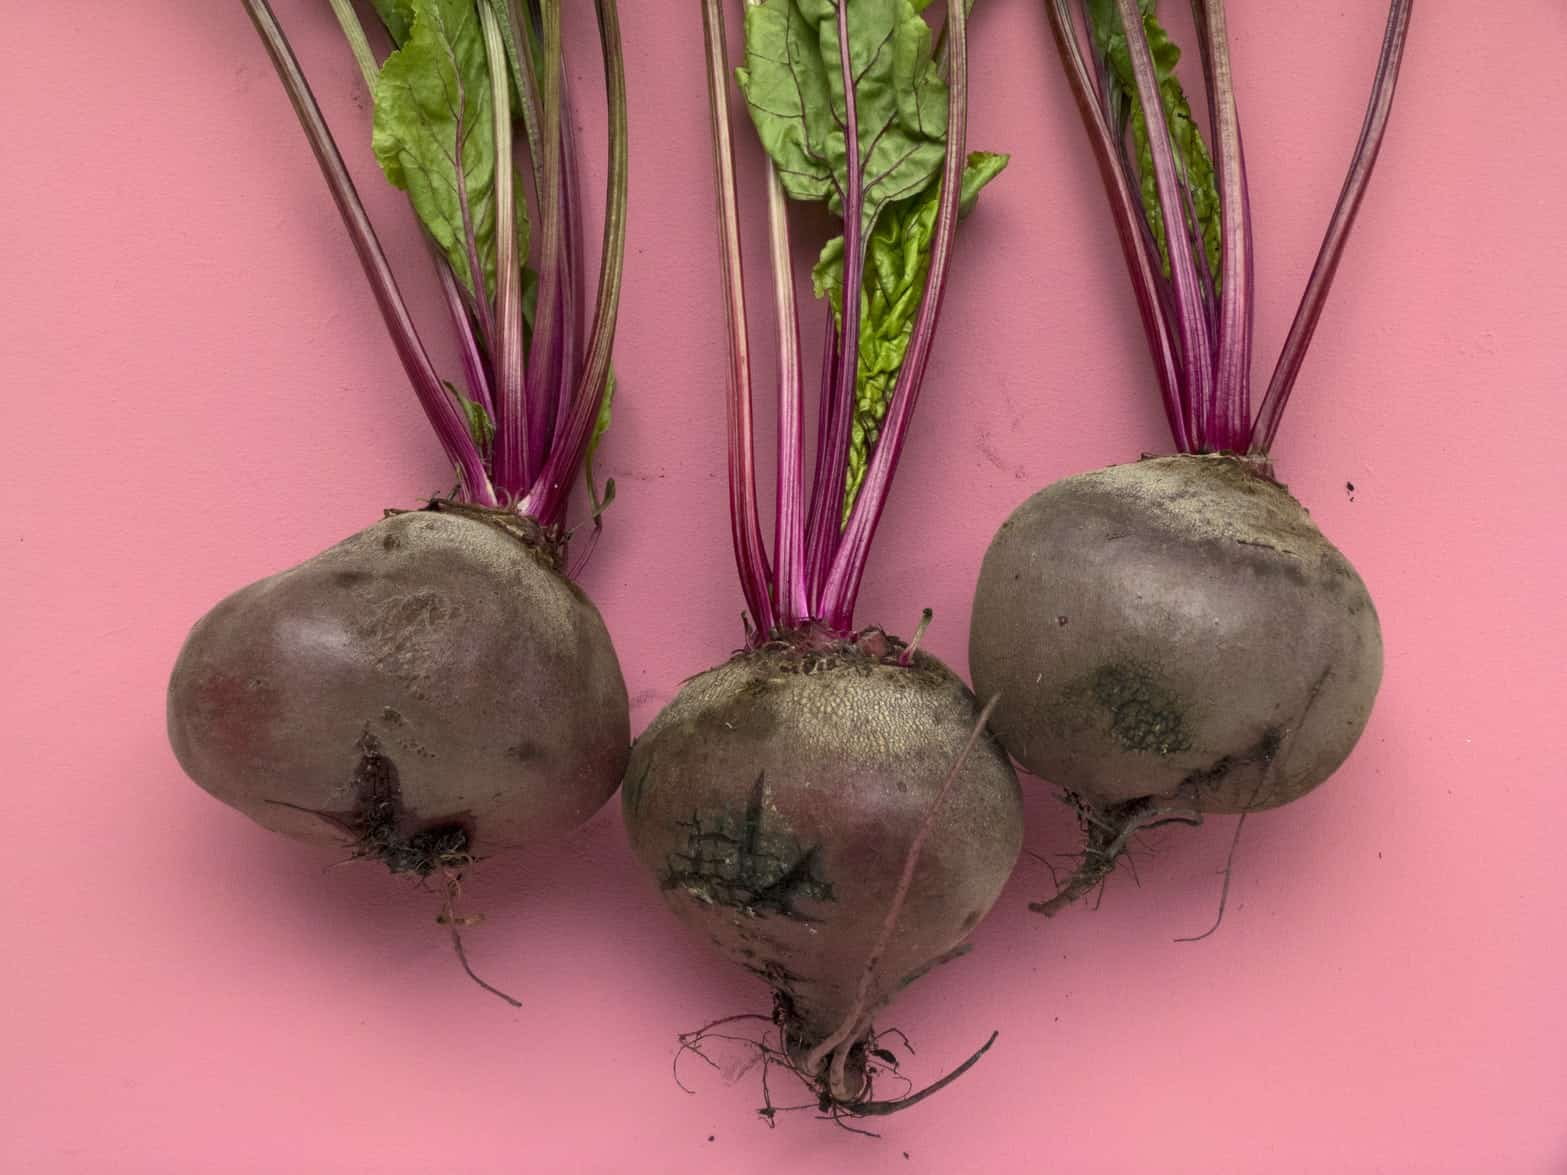 6-health-benefits-of-beetroot-powder-(and-how-to-choose-a-good-one)